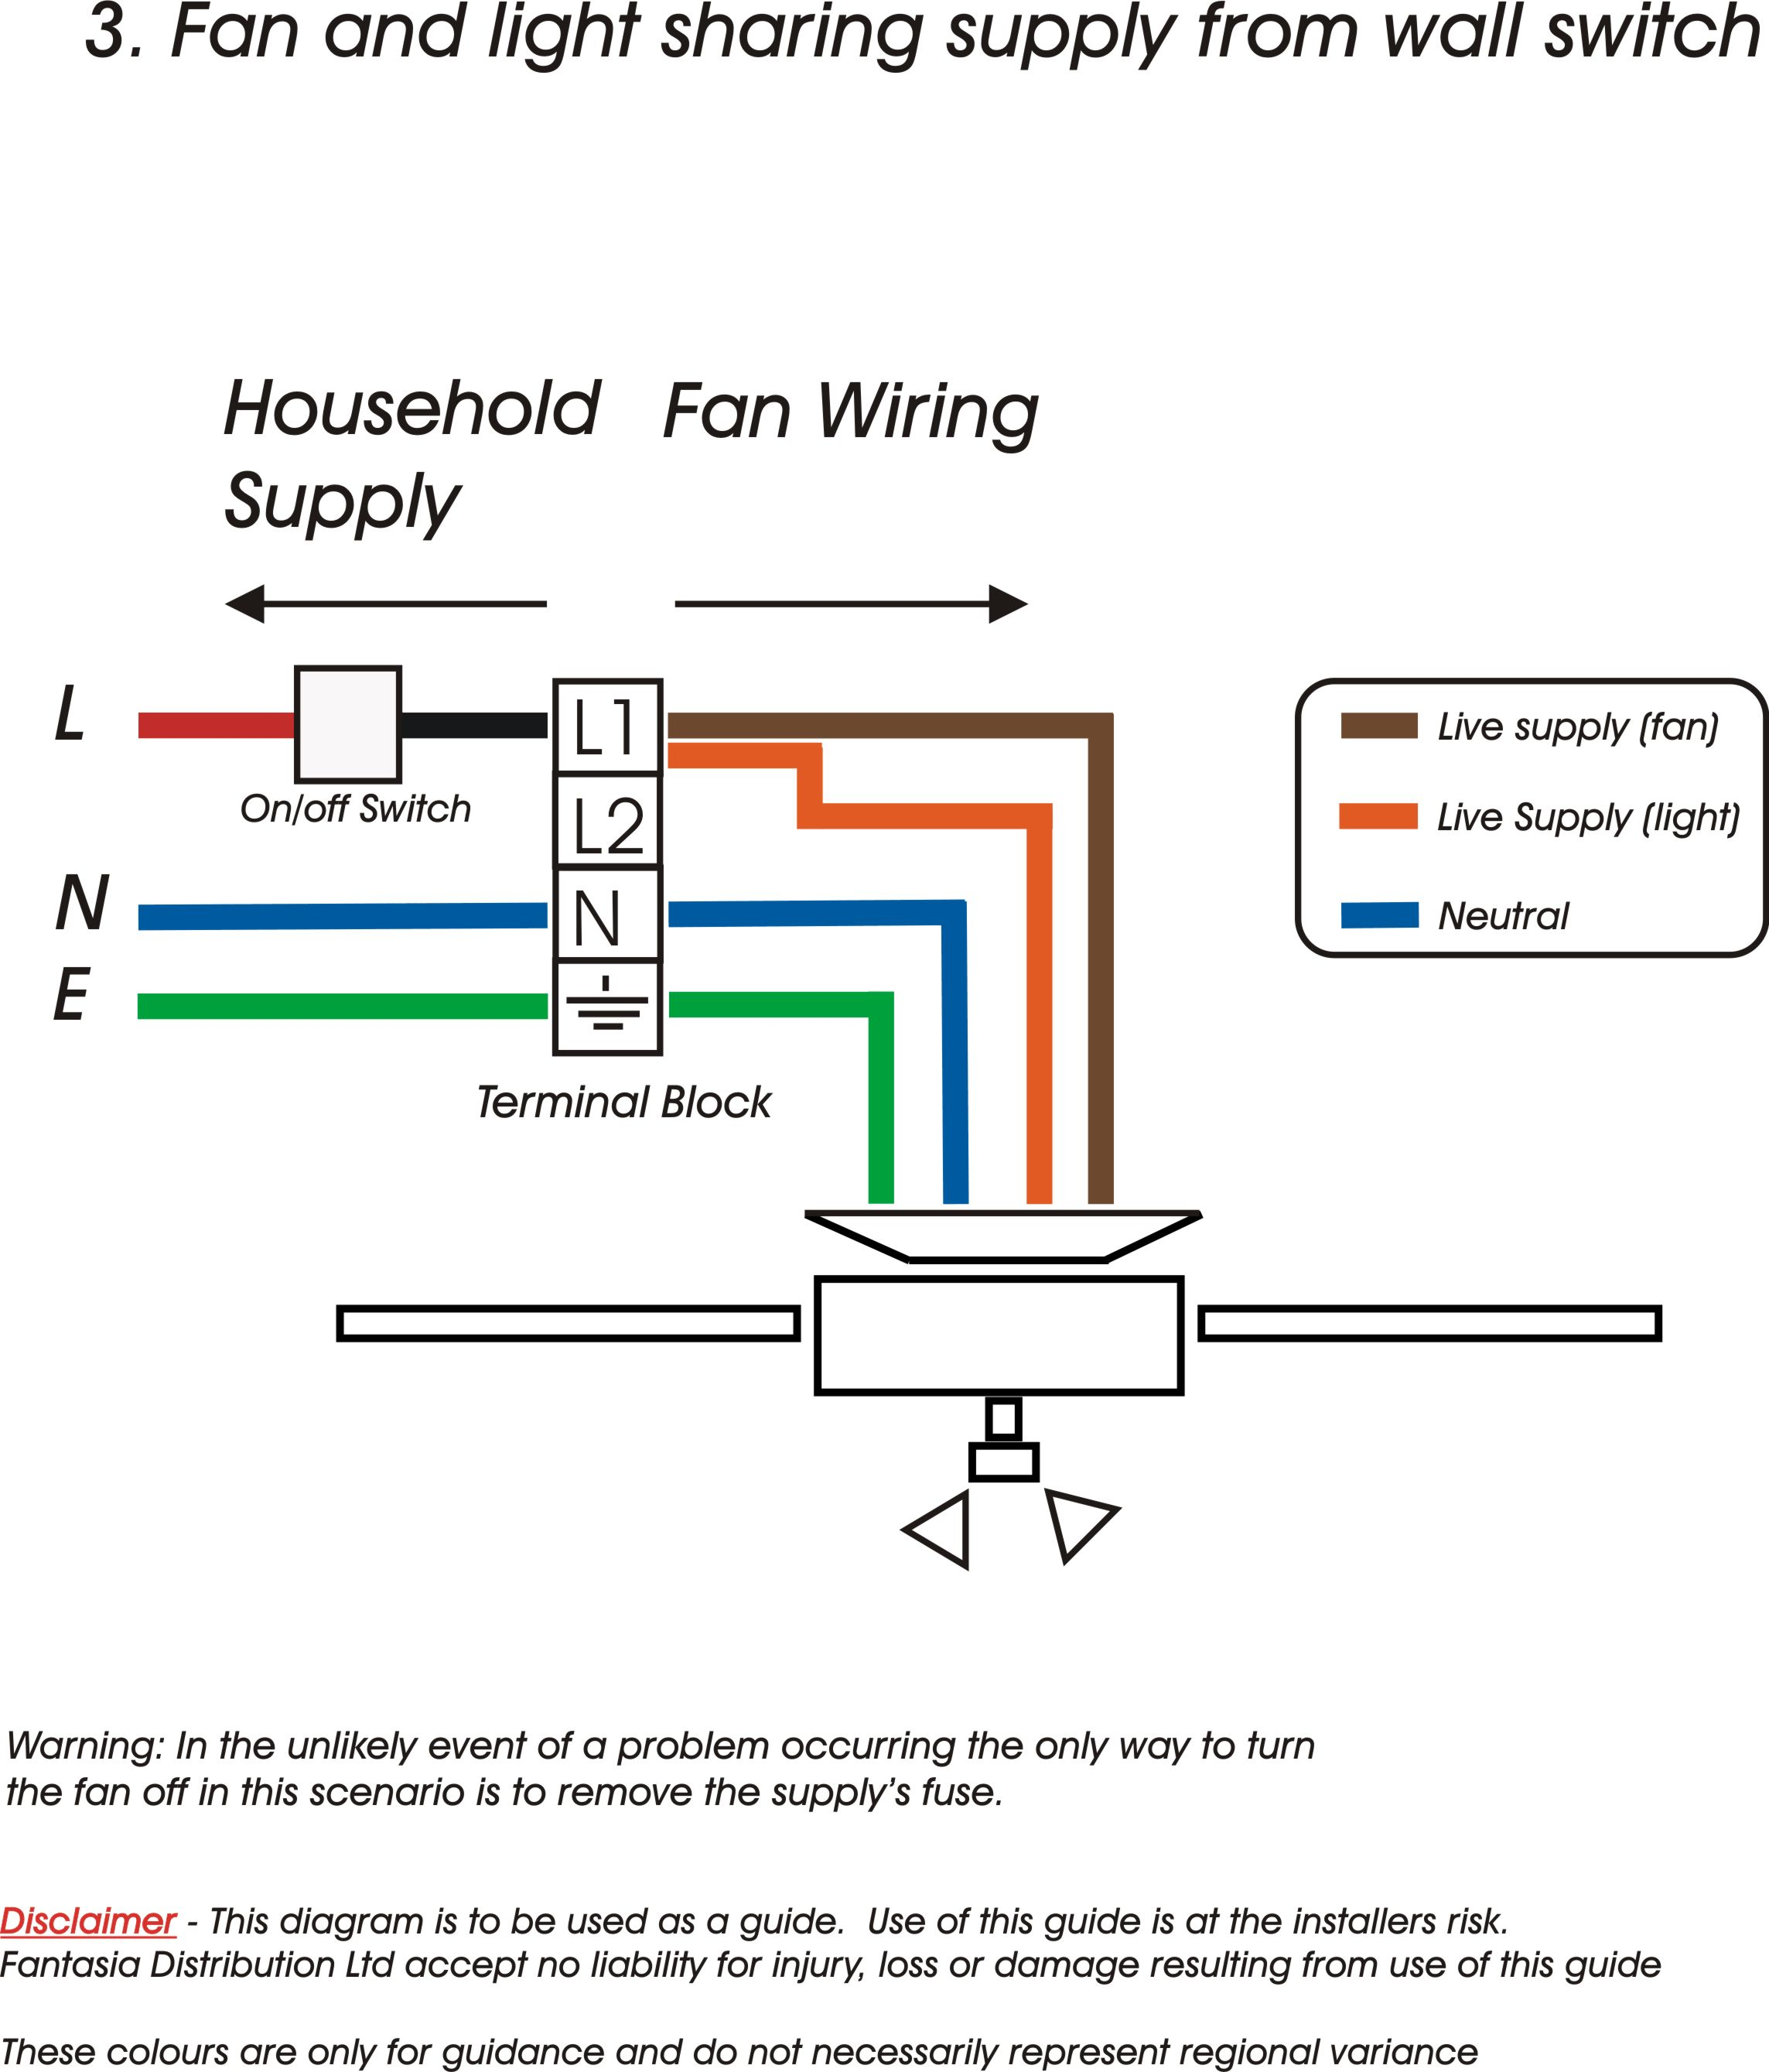 ceiling light remote control 8?resize=800%2C937 hunter ceiling fan pull switch wiring diagram integralbook com zing ear switch wiring diagram at gsmx.co